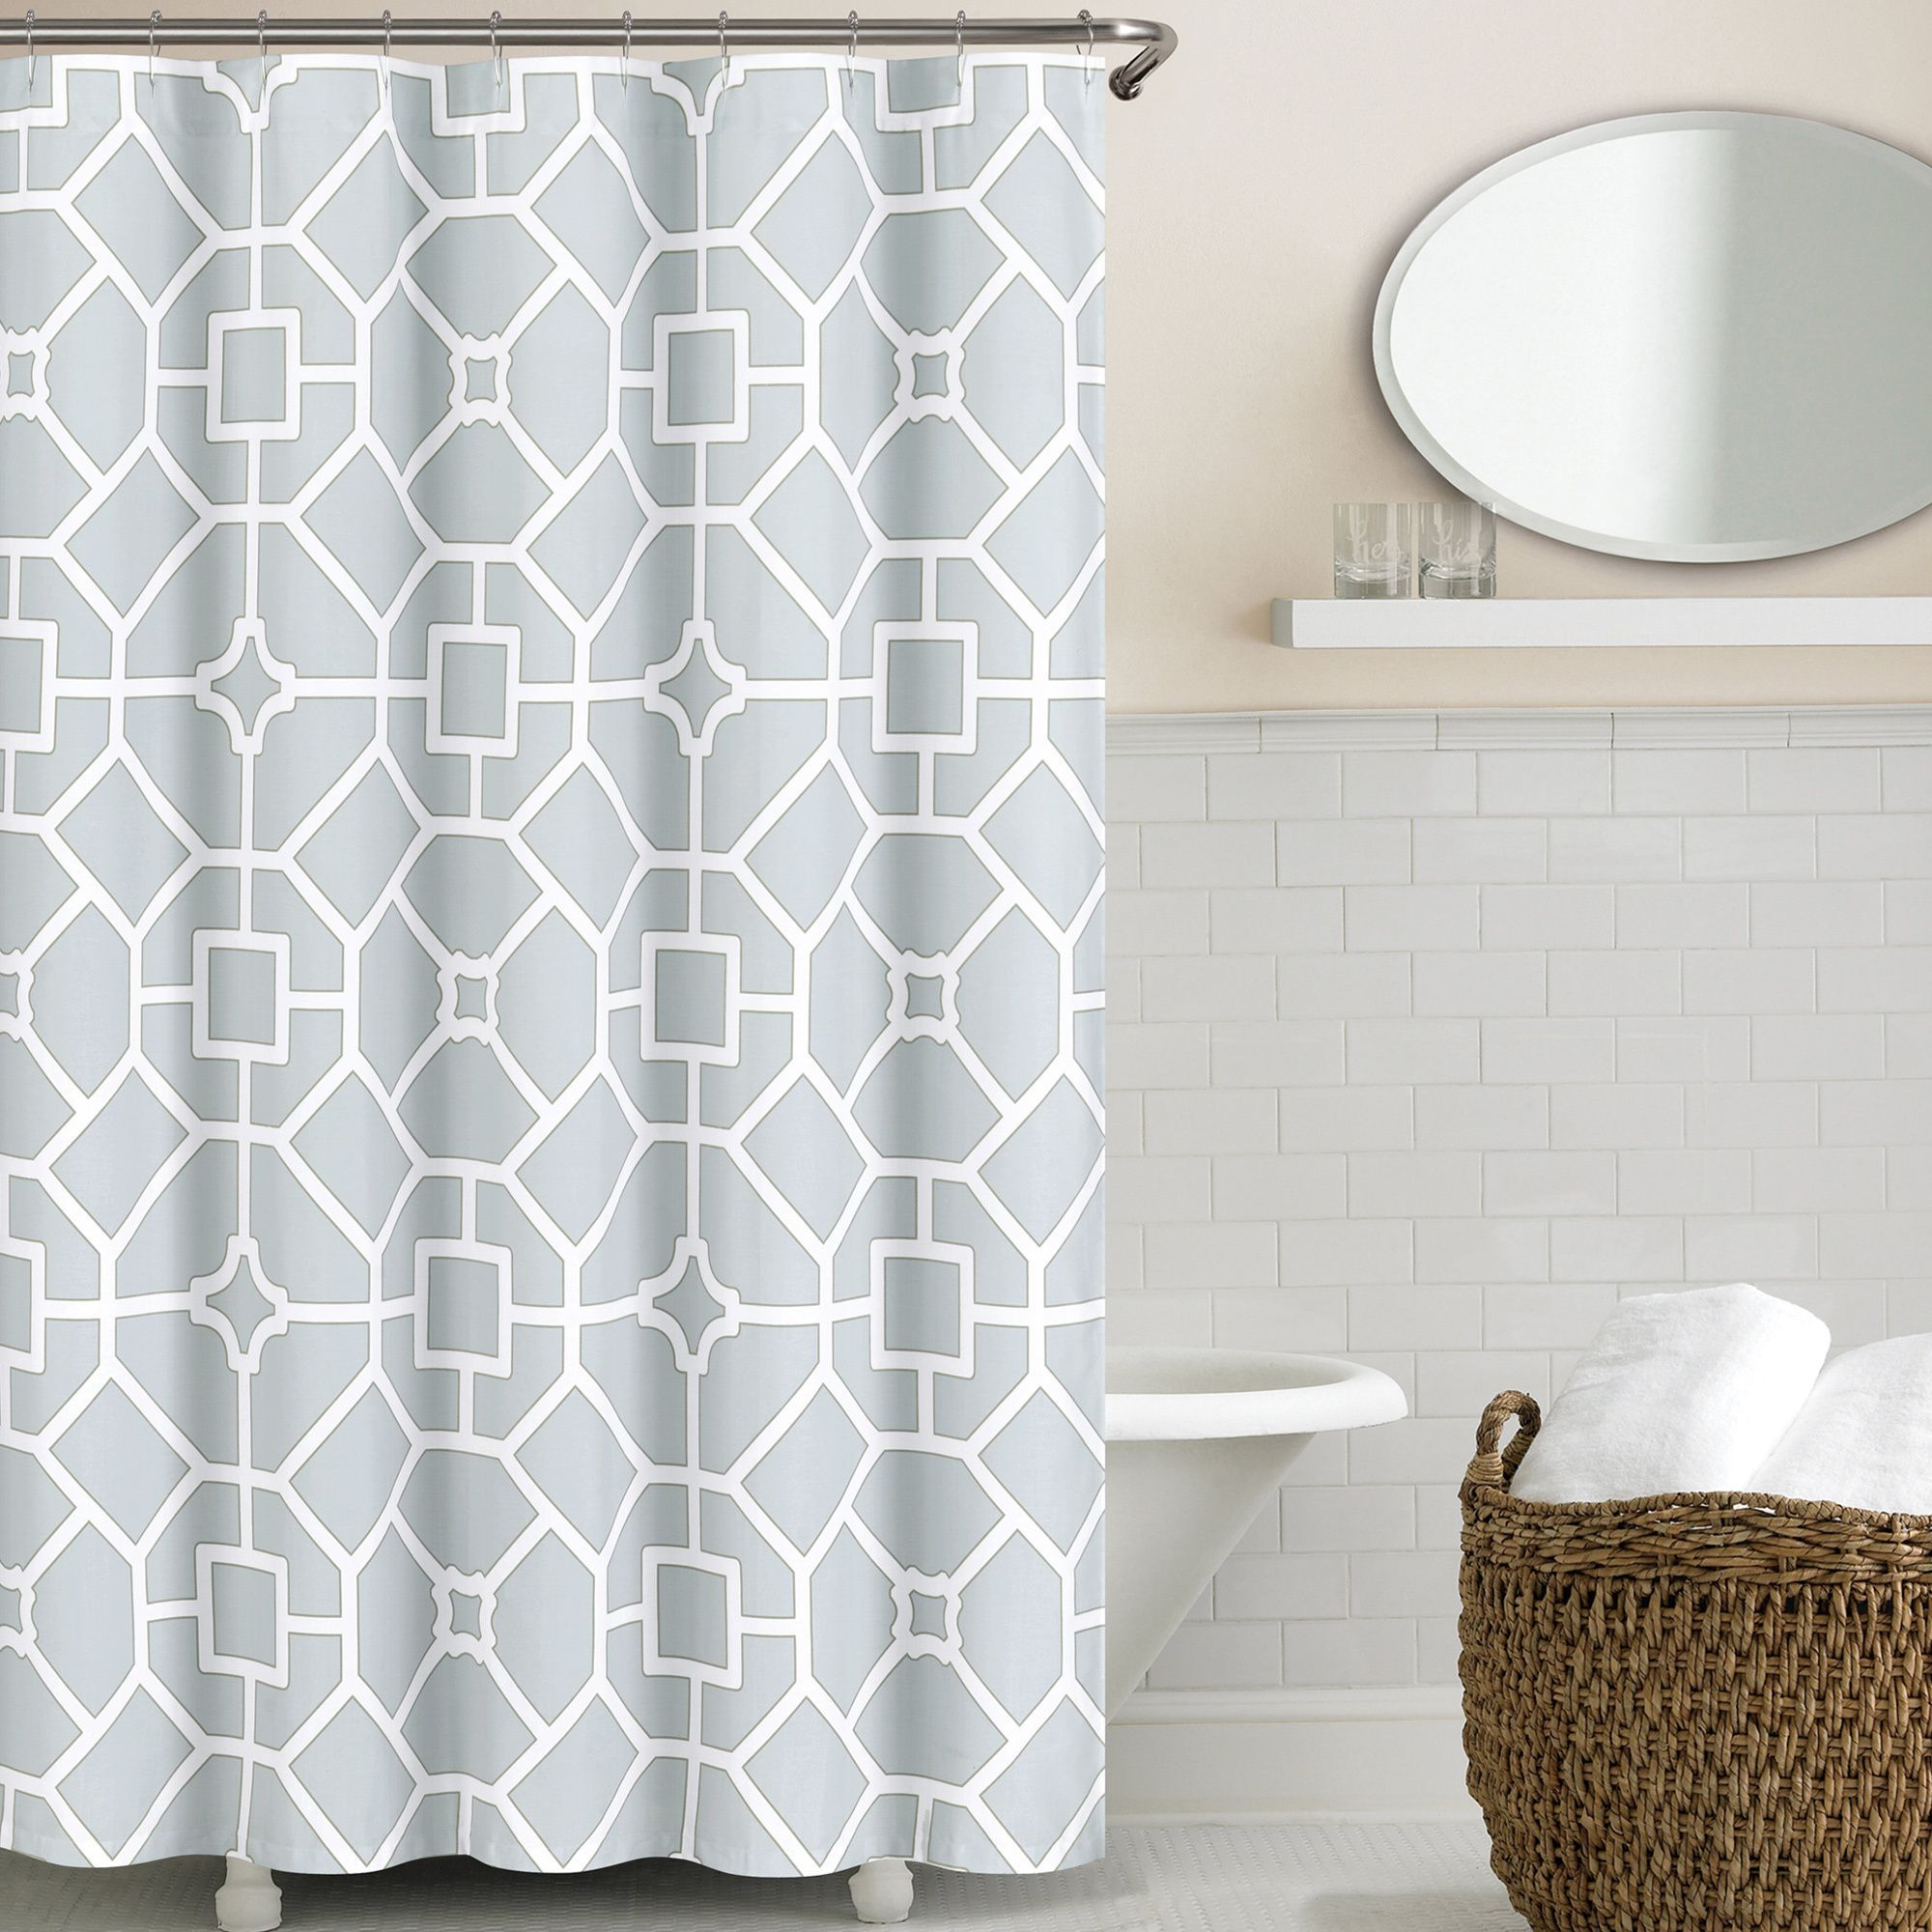 Echelon Home Gramercy Shower Curtain Baby Blue Cotton Blend